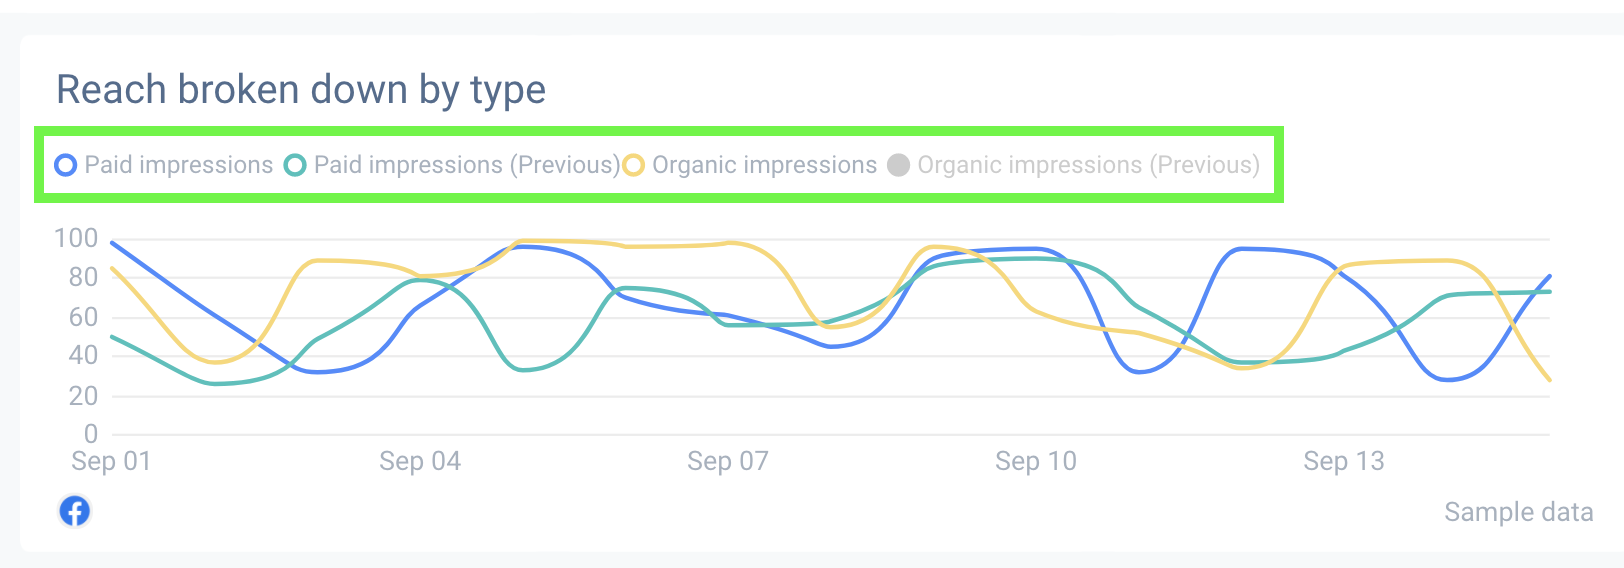 Your report can showcase metrics in with a nice line graph that's simple to understand and present data effectivelly.